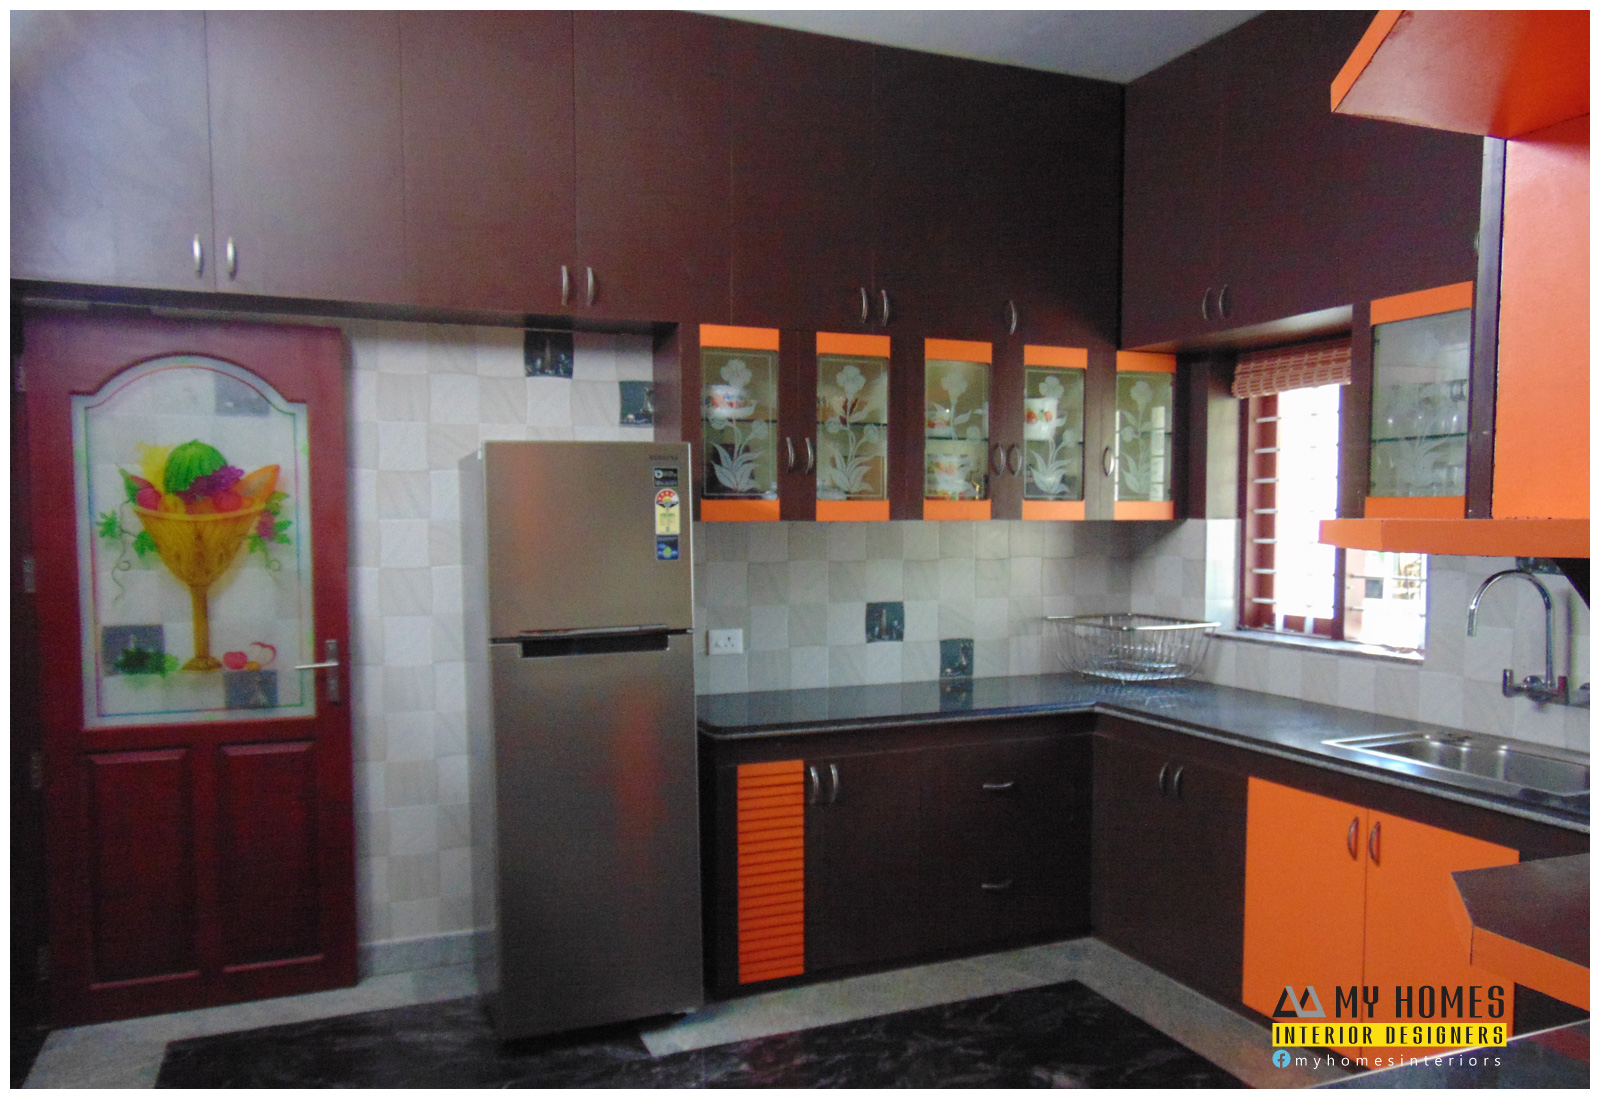 Kerala kitchen designs from top interior designers thrissur for New kitchen designs in kerala